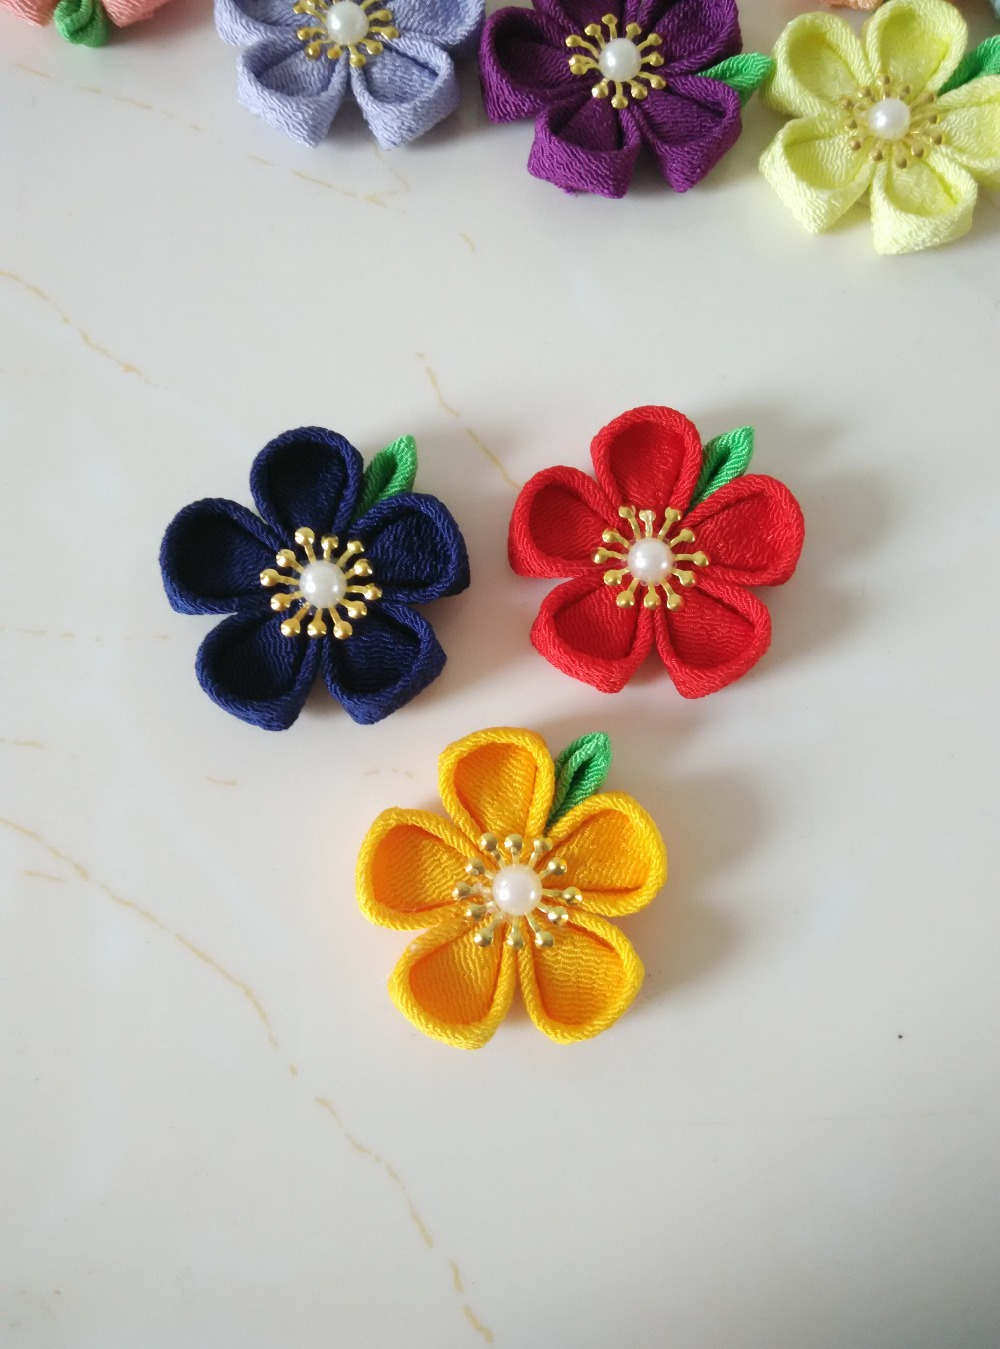 Aliexpress Buy Handmade Kanzashi Flowers Diy Craft Supplies To